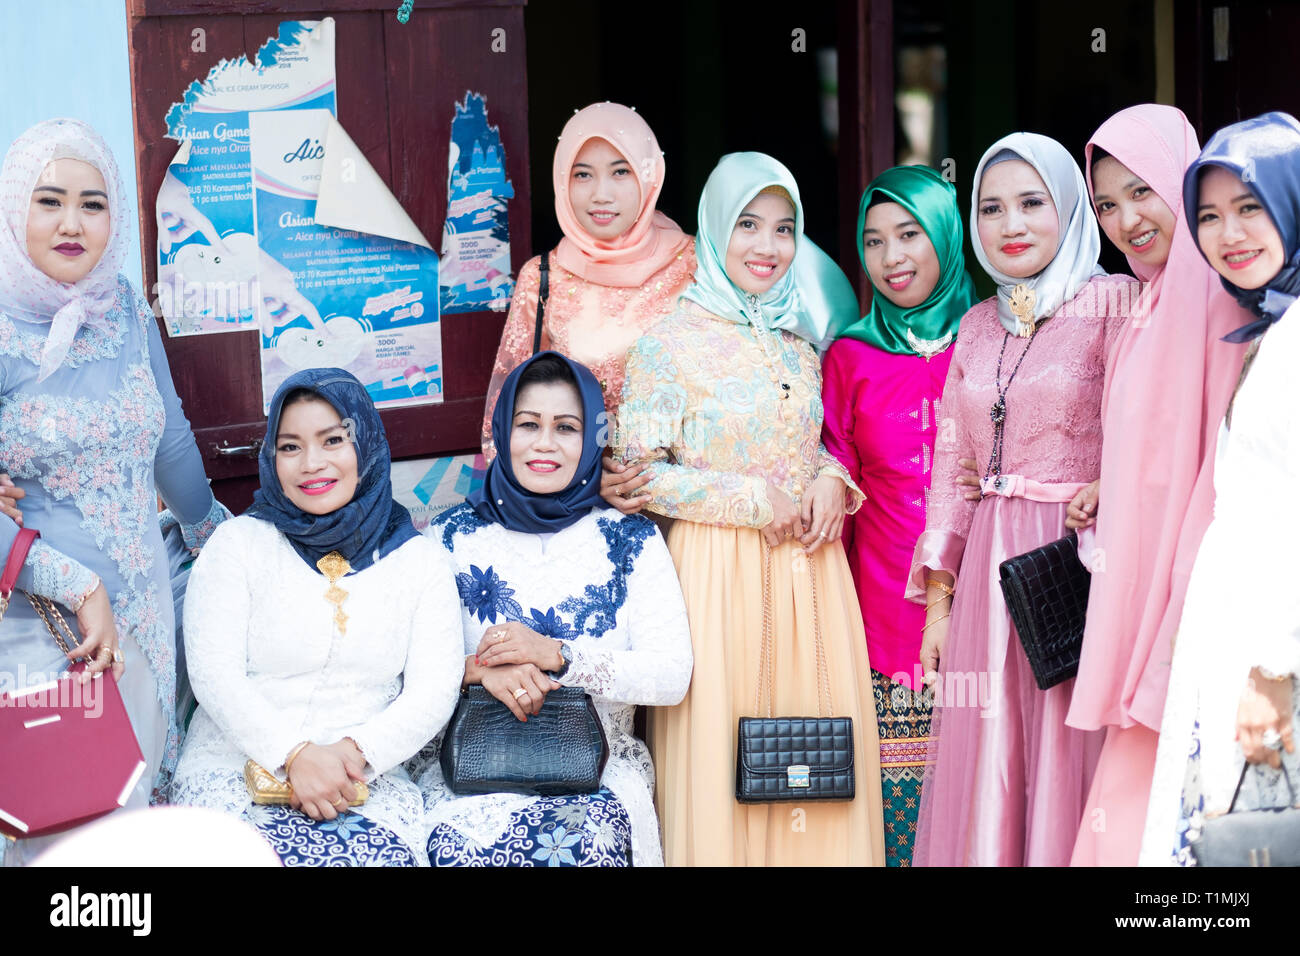 A group of Muslim women wearing traditional clothing, Sulawesi, Indonesia Stock Photo